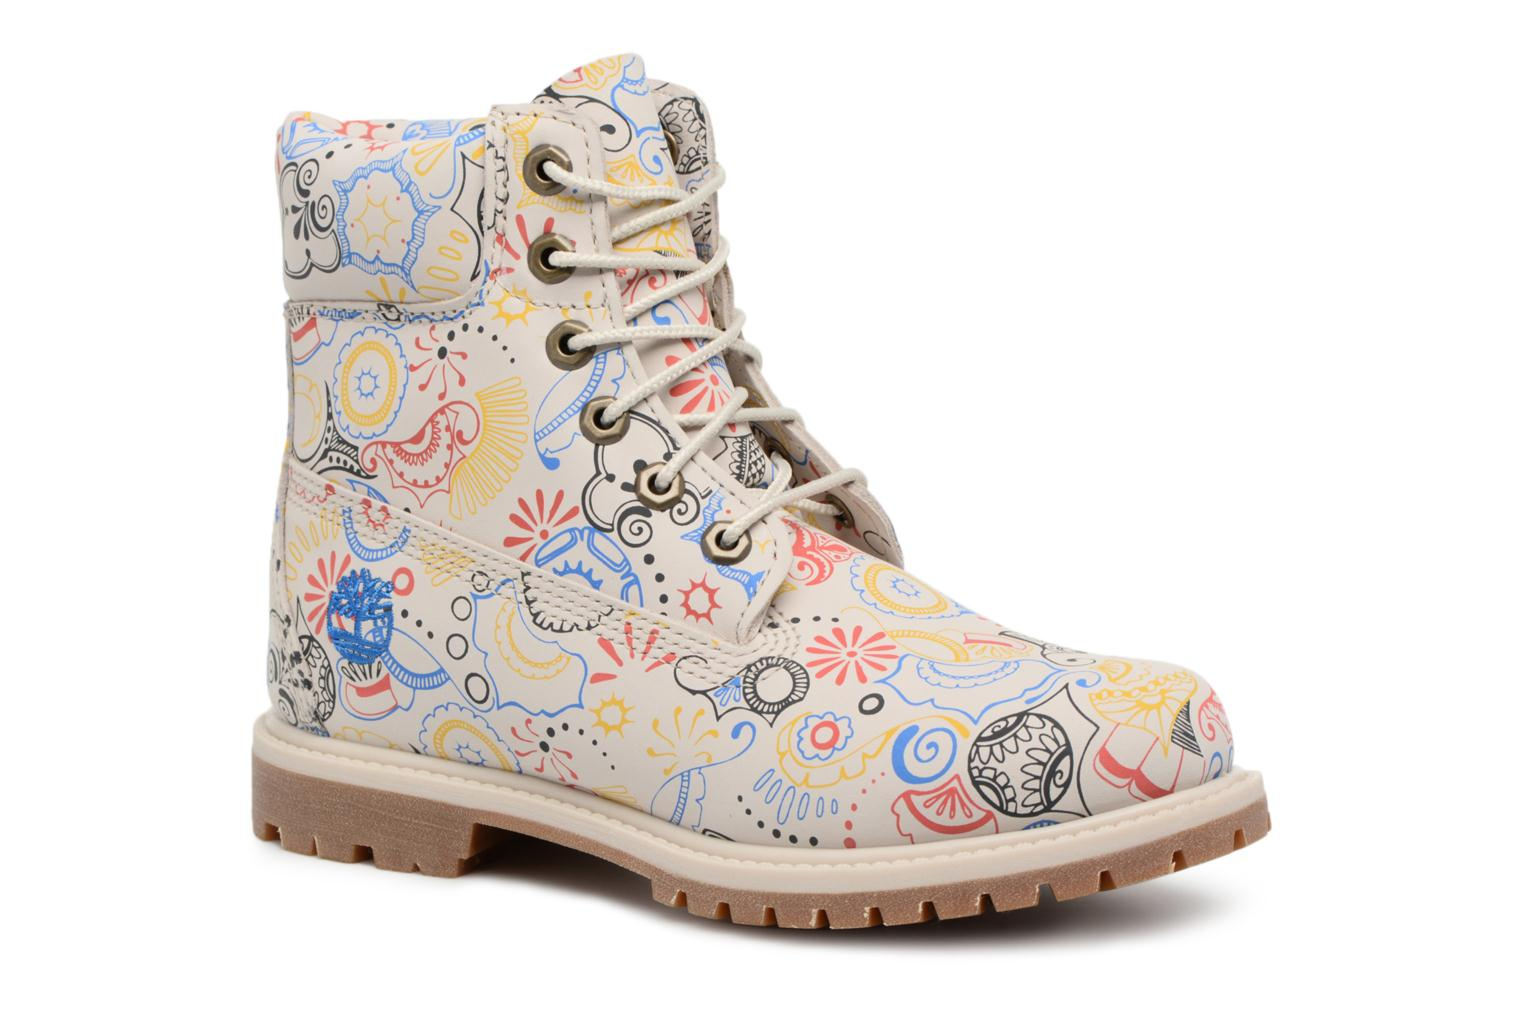 6in Premium Boot - W Rainy Day Waterbuck w/Ocean Henna Print